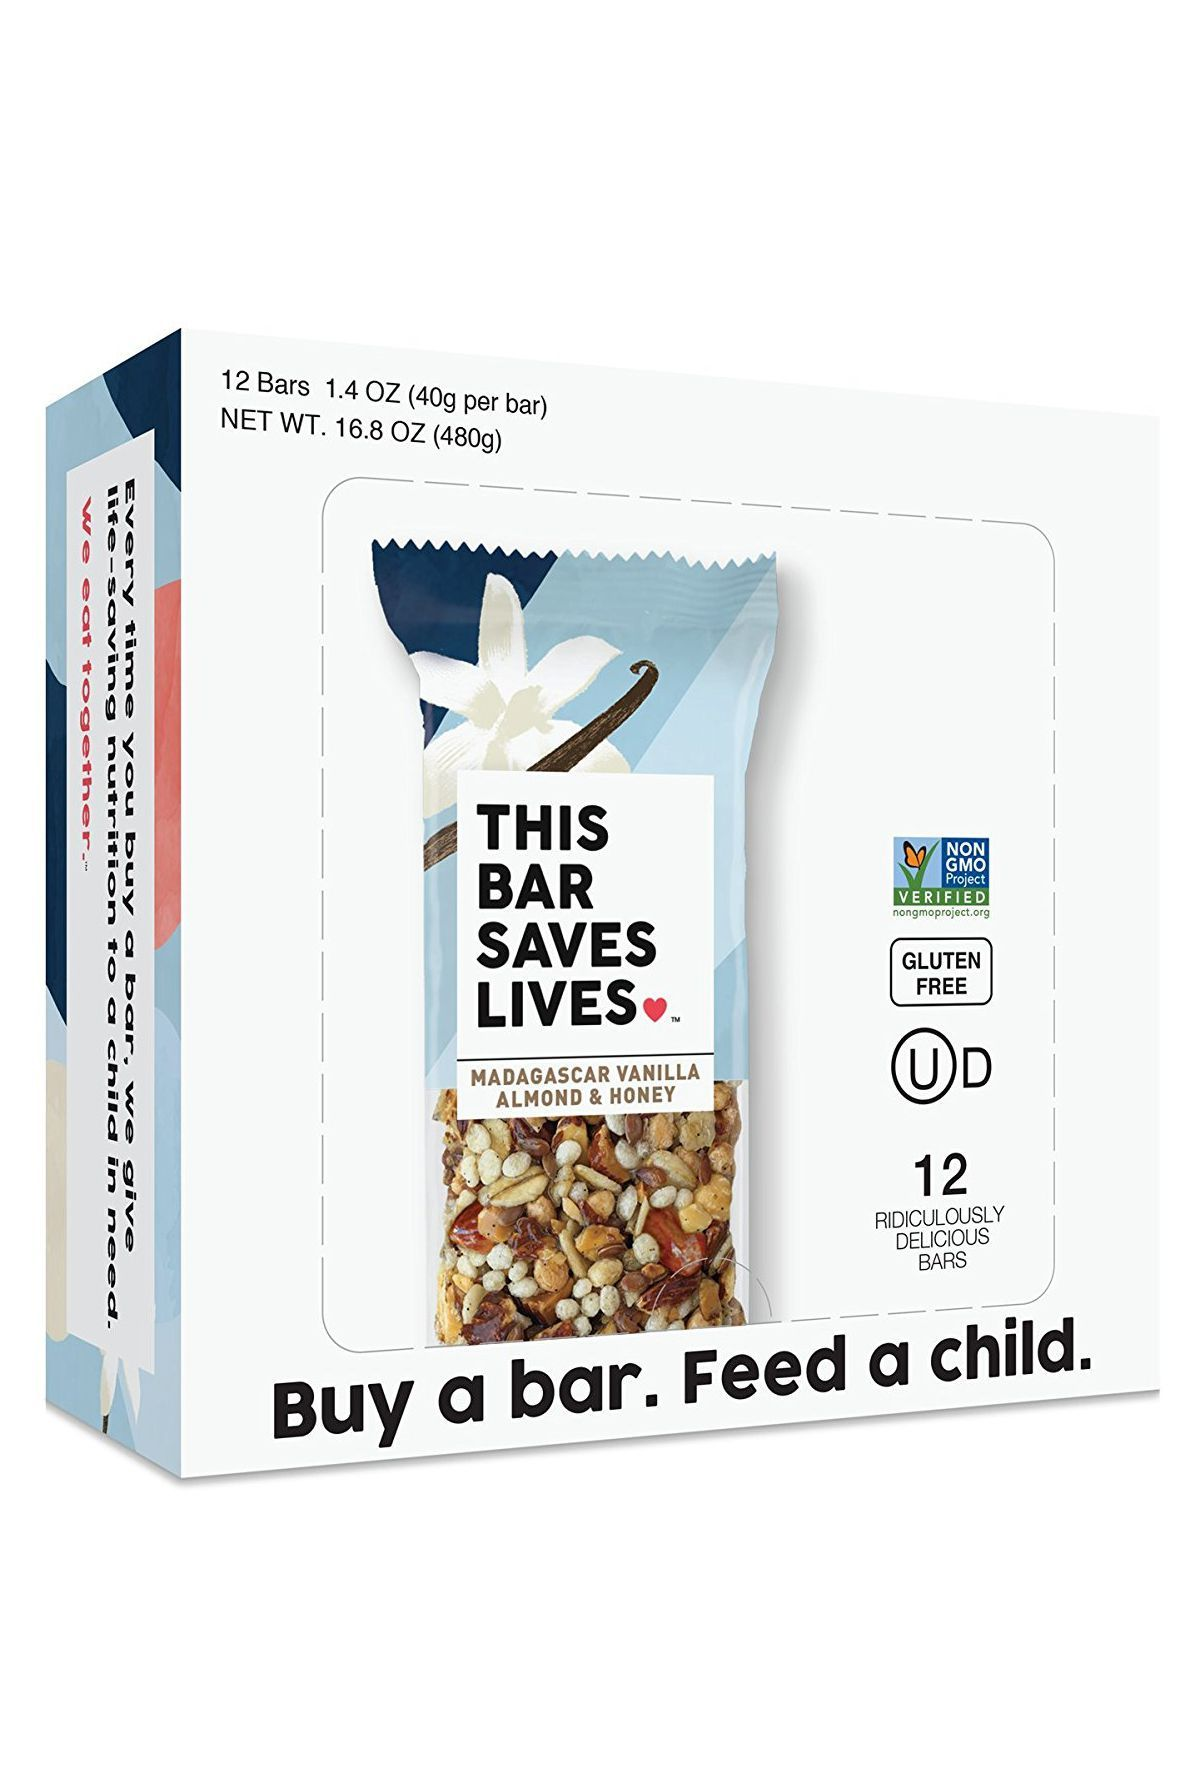 This Bar Saves Lives in Madagascar Vanilla, Almond and Honey